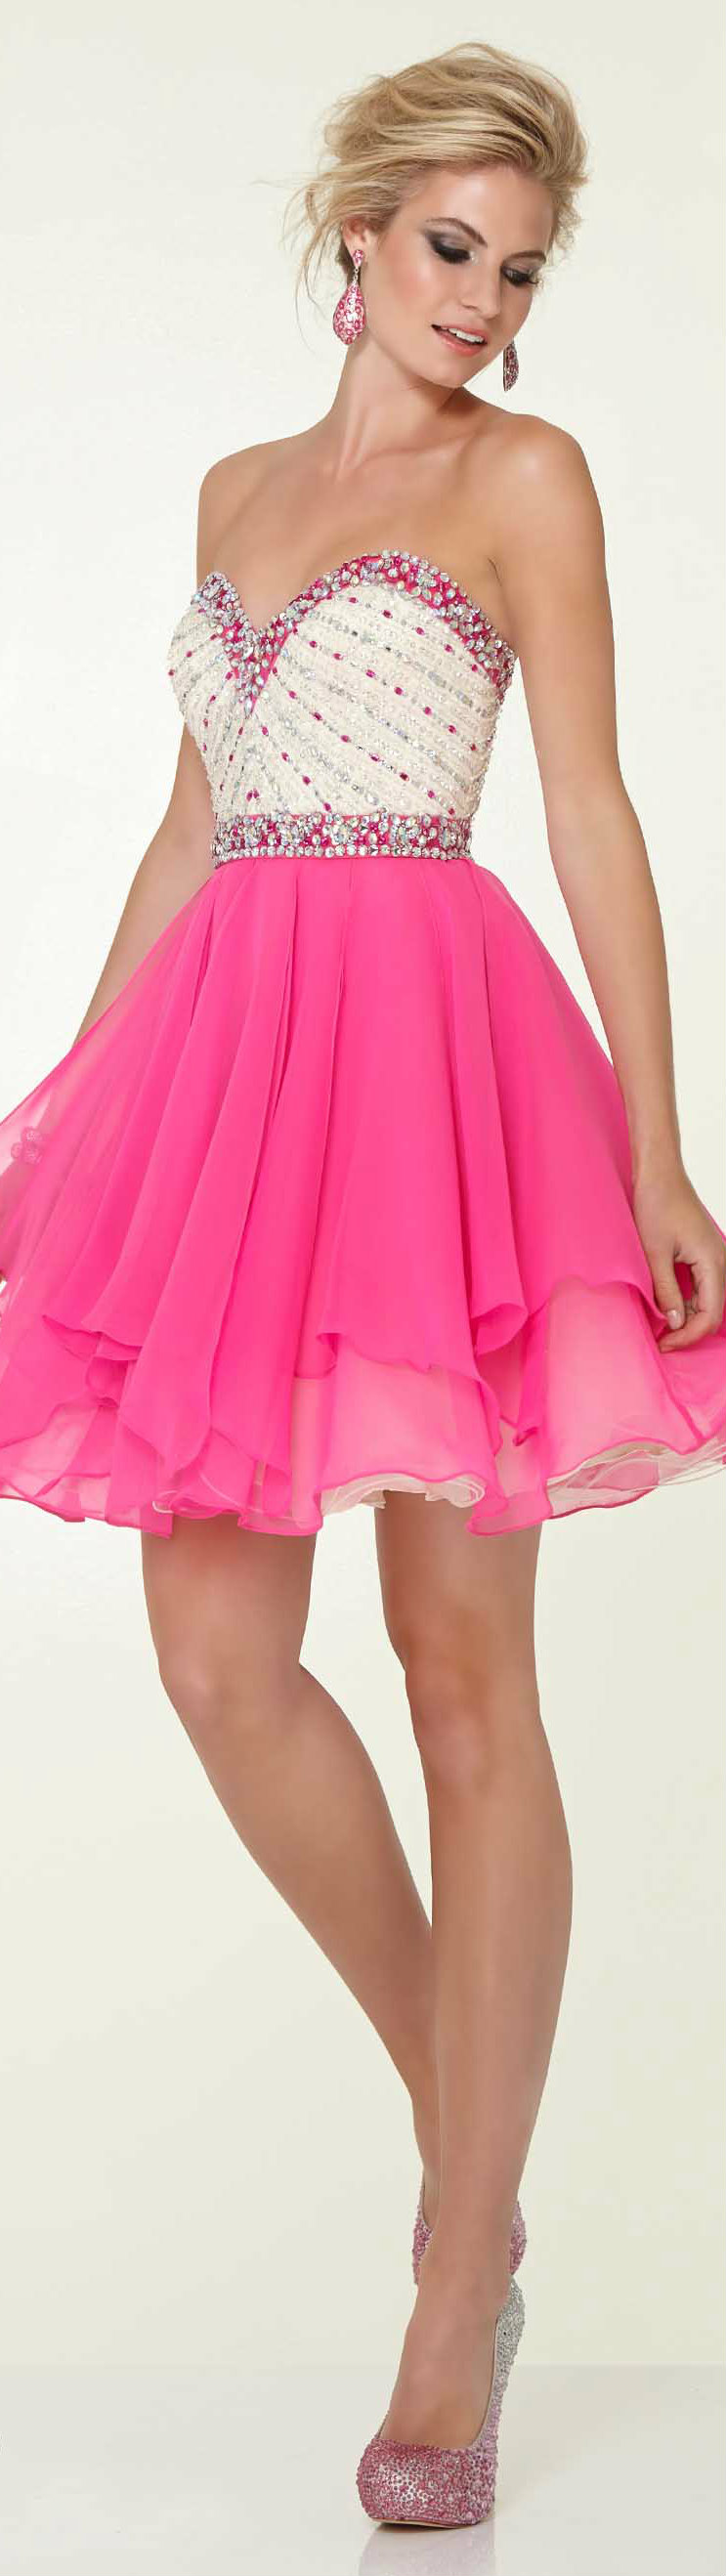 Hot pink homecoming dress  feeling like a princess  Fashion LuAmour  Pinterest  Happy colors